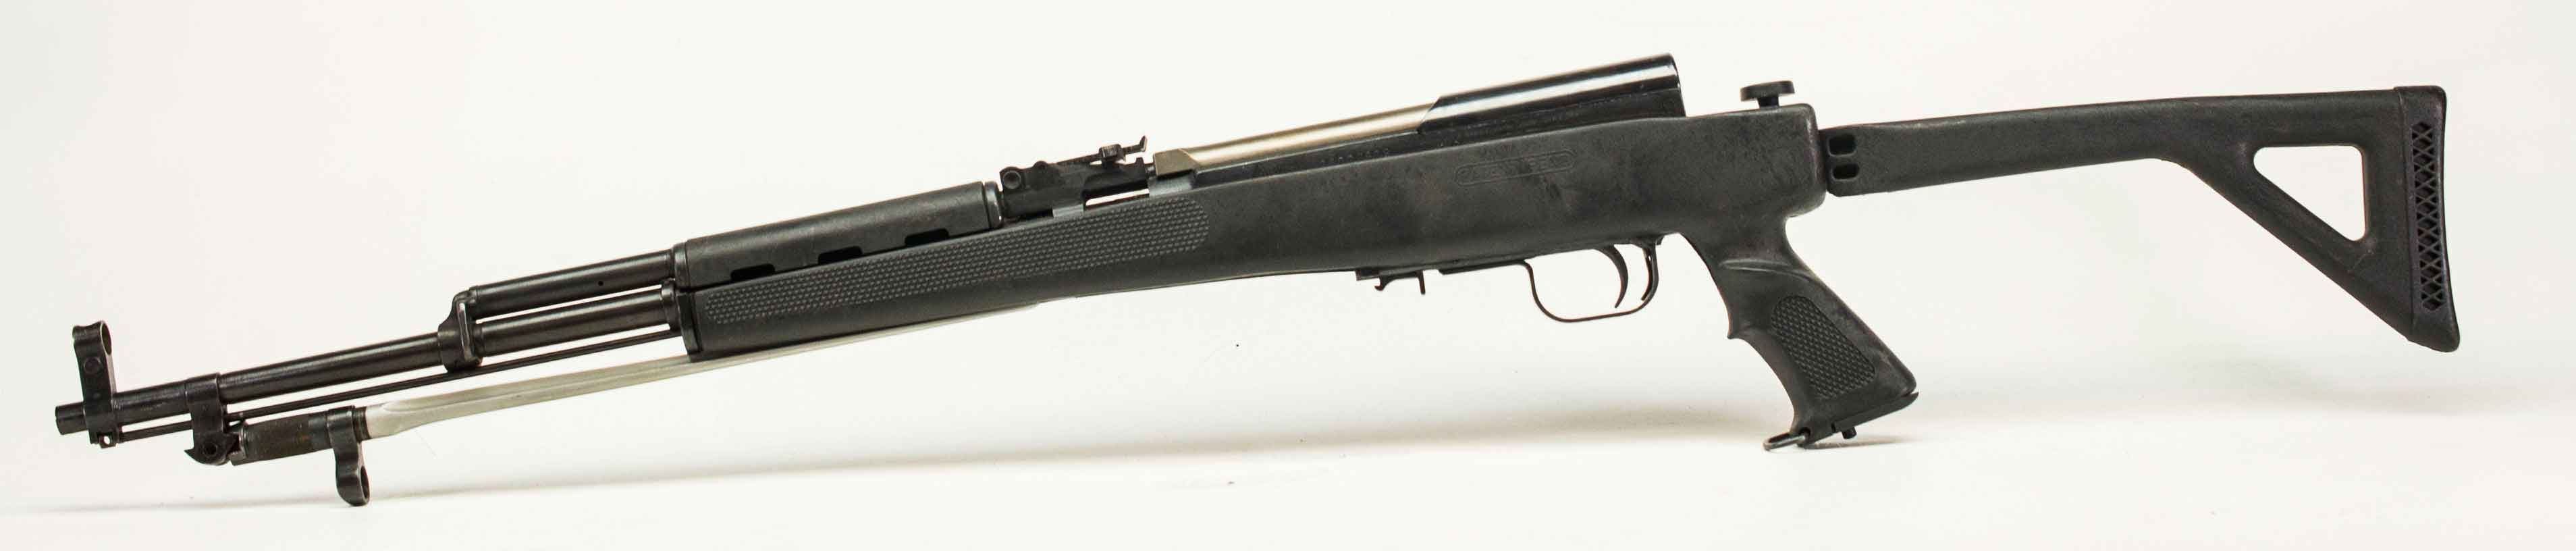 Norinco Sks 762x39 Auction Id 11179479 End Time Apr 23 2018 Mossberg 715t Exploded Diagram View Full Size Images